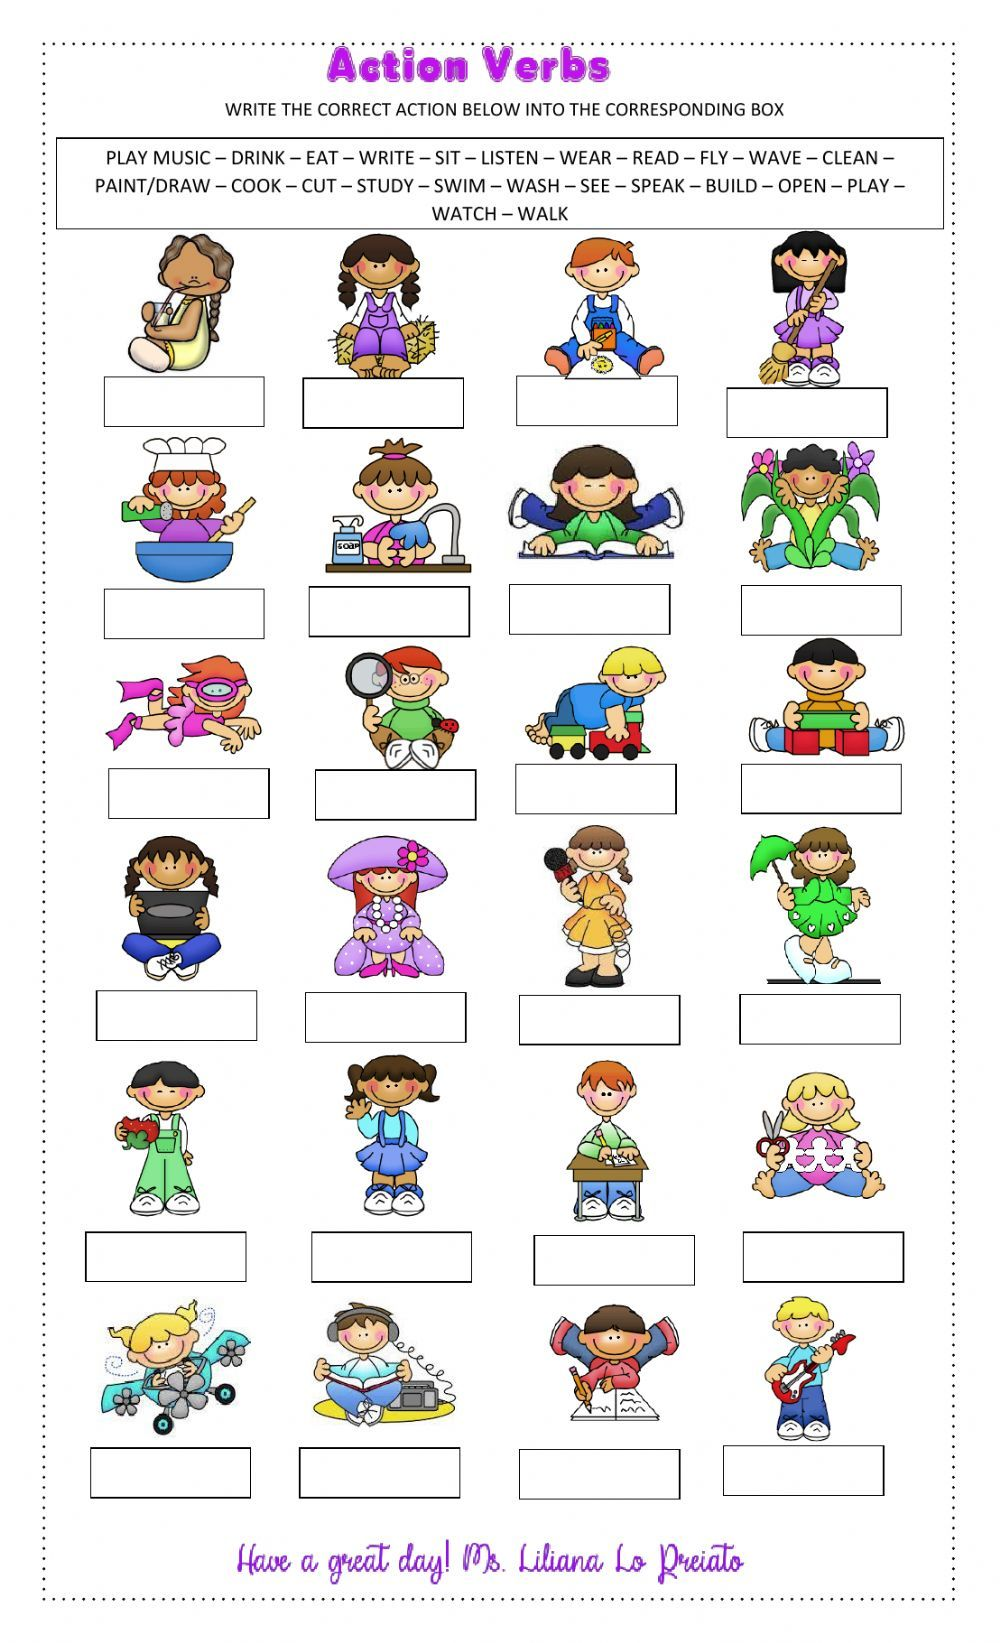 Action Verbs Interactive And Downloadable Worksheet You Can Do